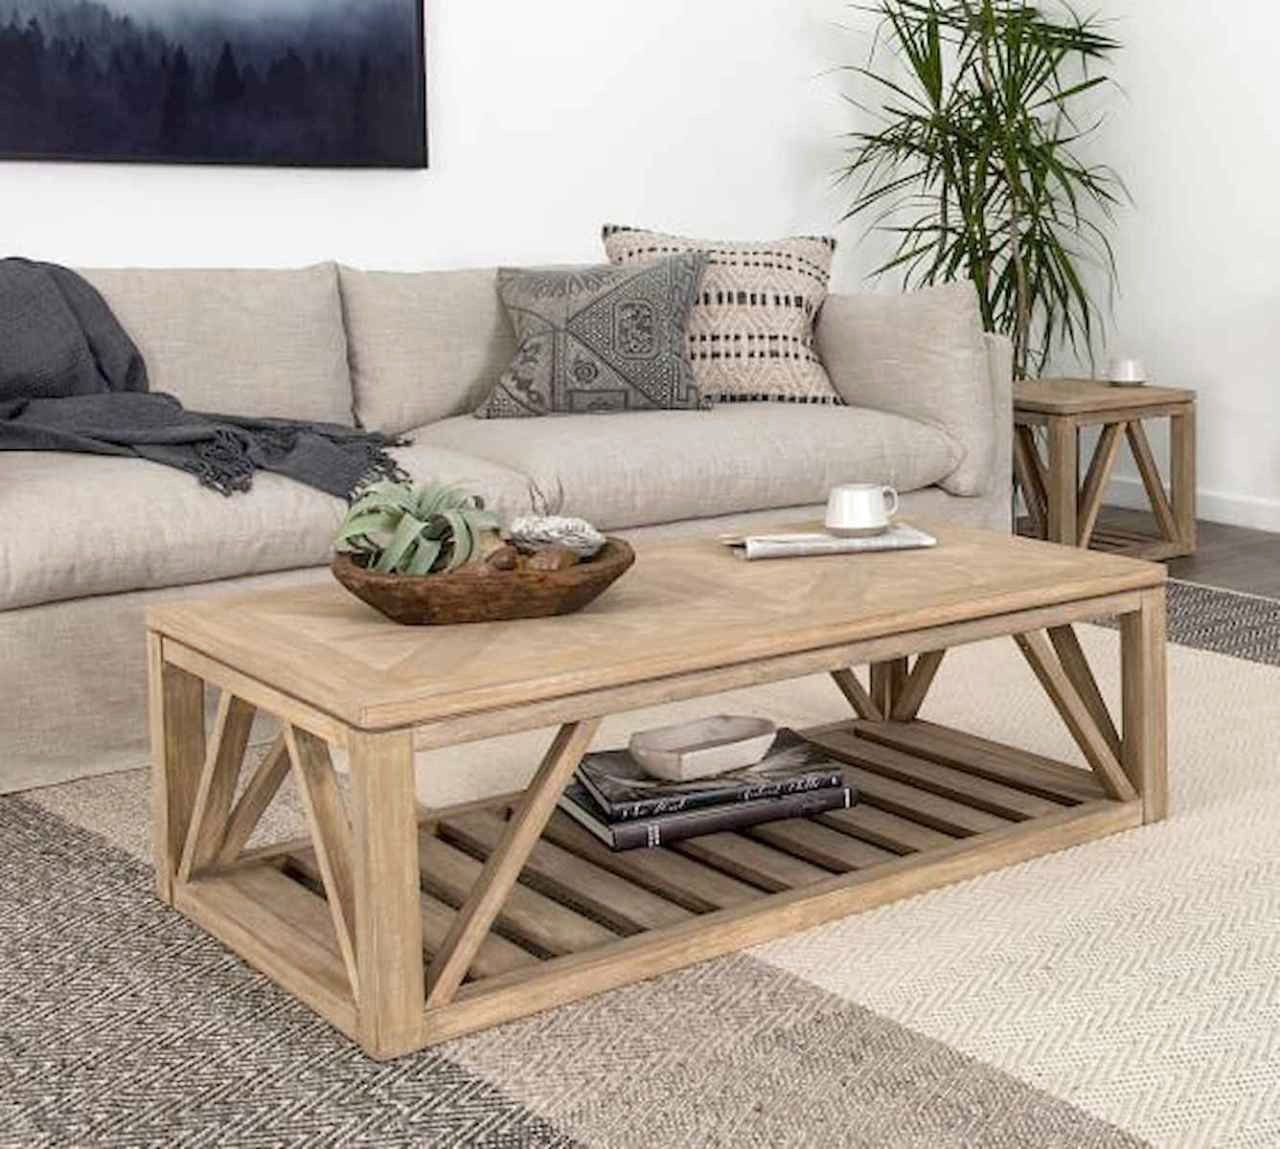 62 Favourite Diy Projects Furniture Living Room Table ...